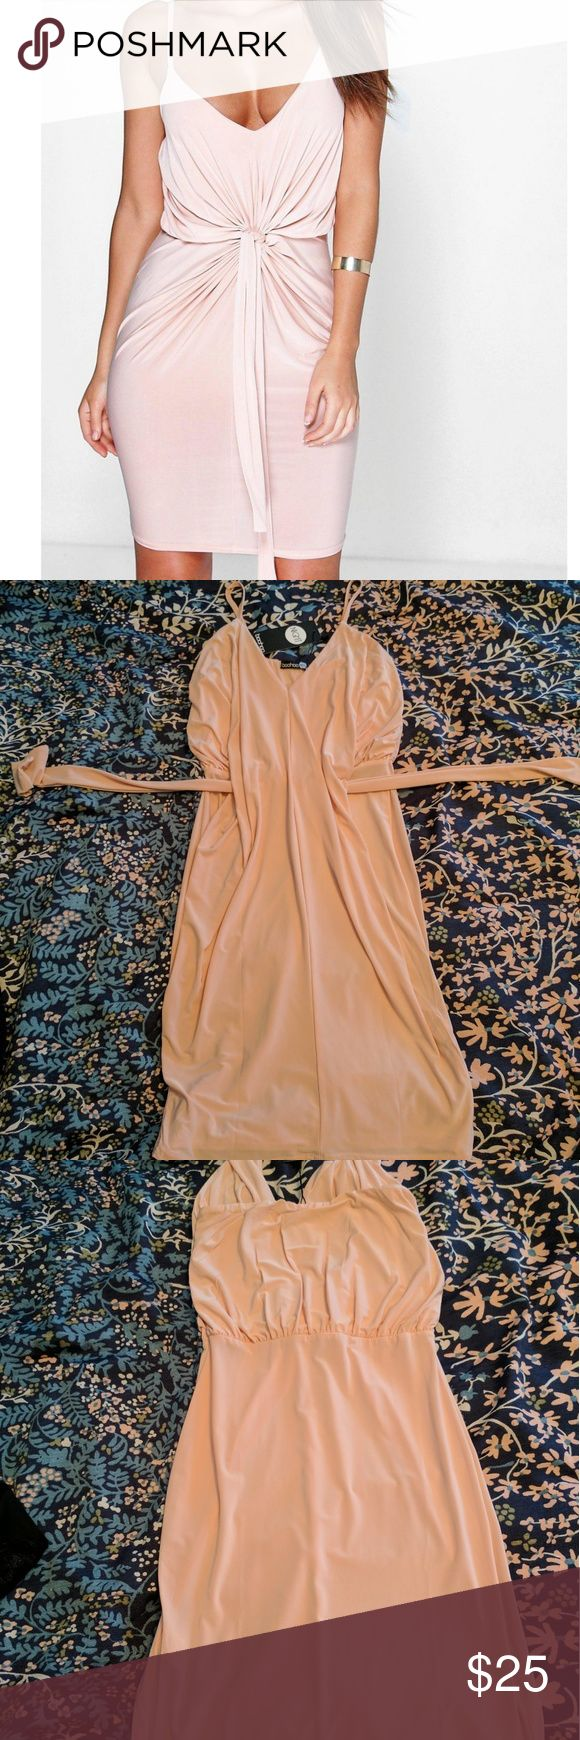 Blush Pink Bodycon Dress Davisa Slinky Knot Detail Bodycon Dress - Brand New, Never Used, tags are still attached. Blush pink color. Boohoo Dresses